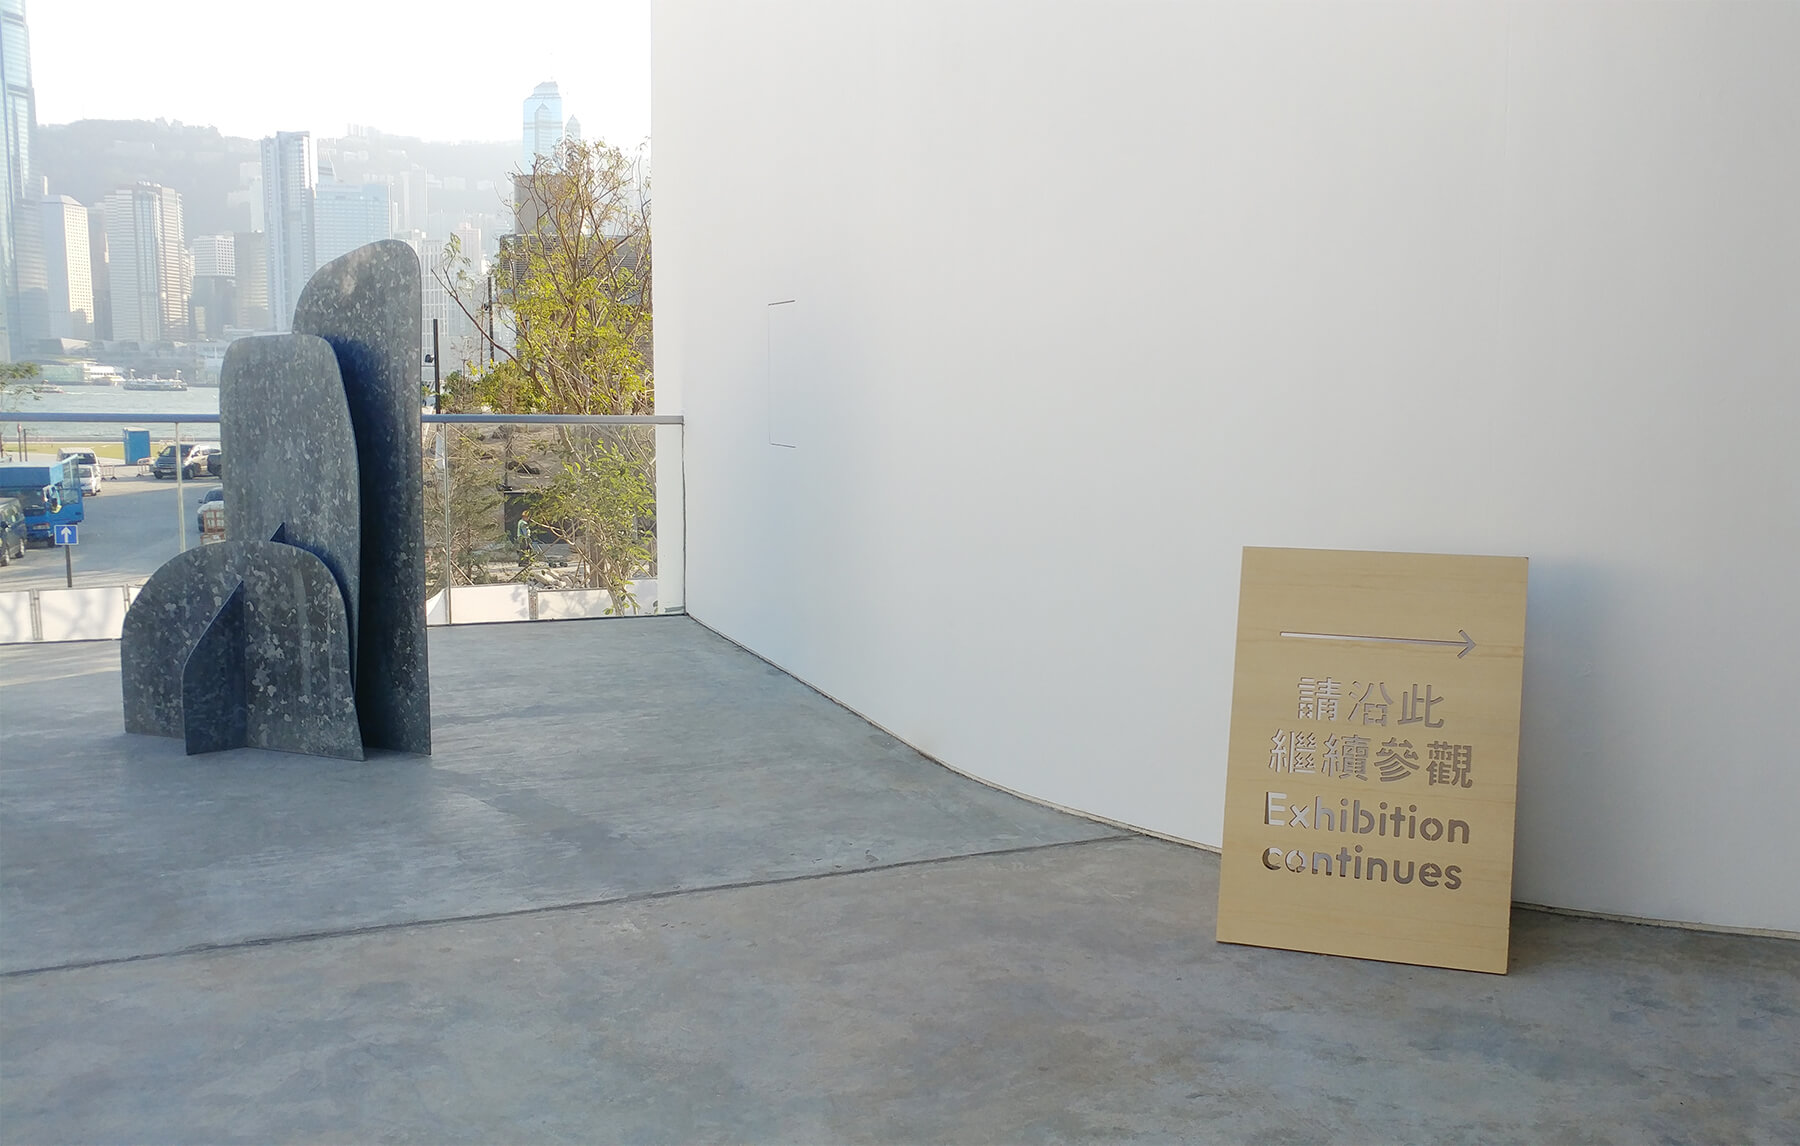 Mplus-noguchi-for-danh-vo-counterpoint-signage1